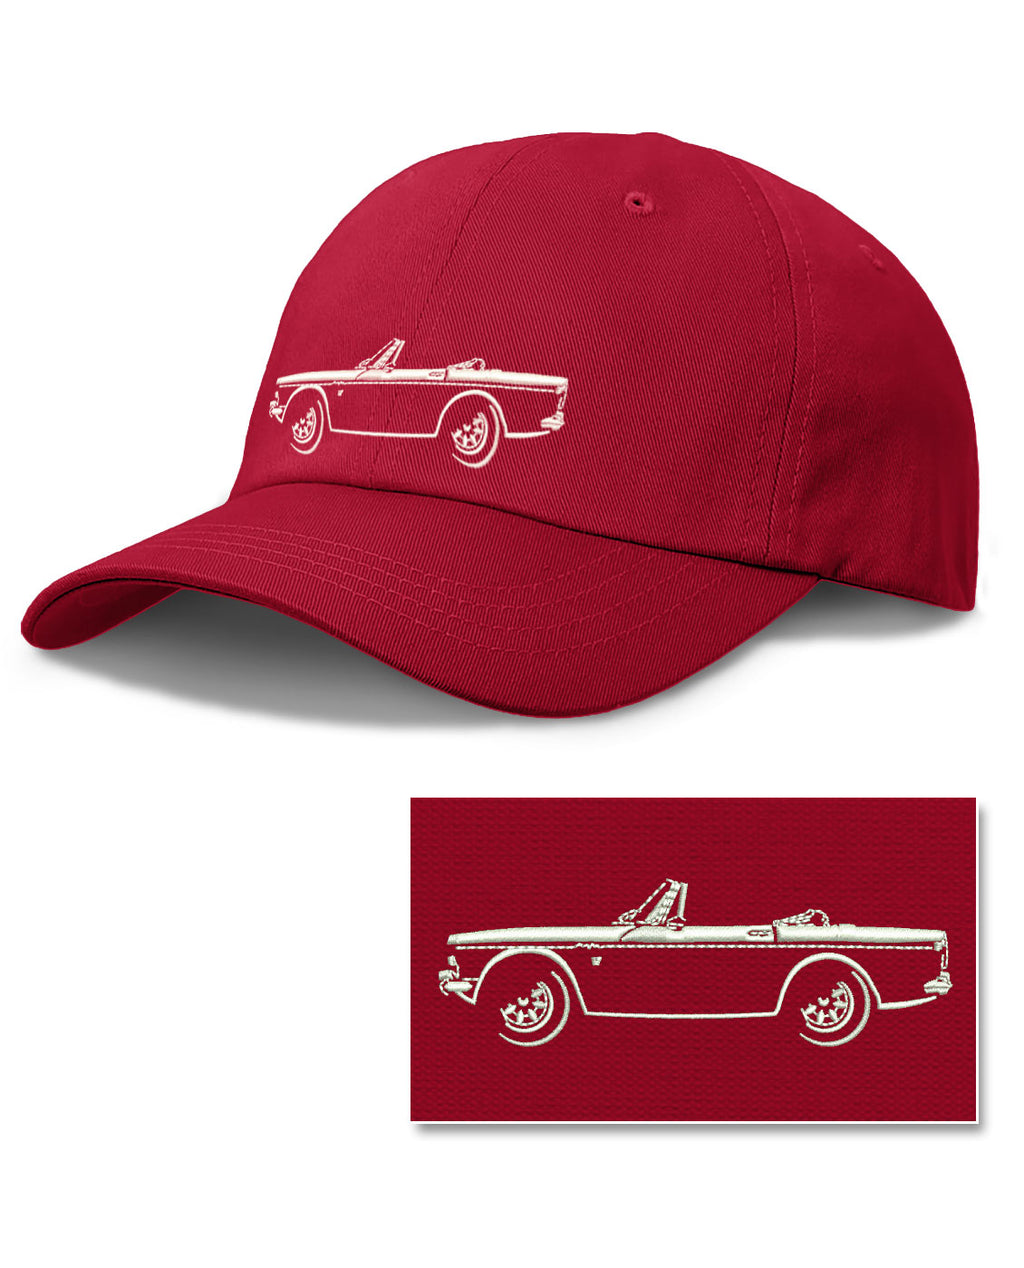 Sunbeam Tiger Convertible Baseball Cap for Men & Women